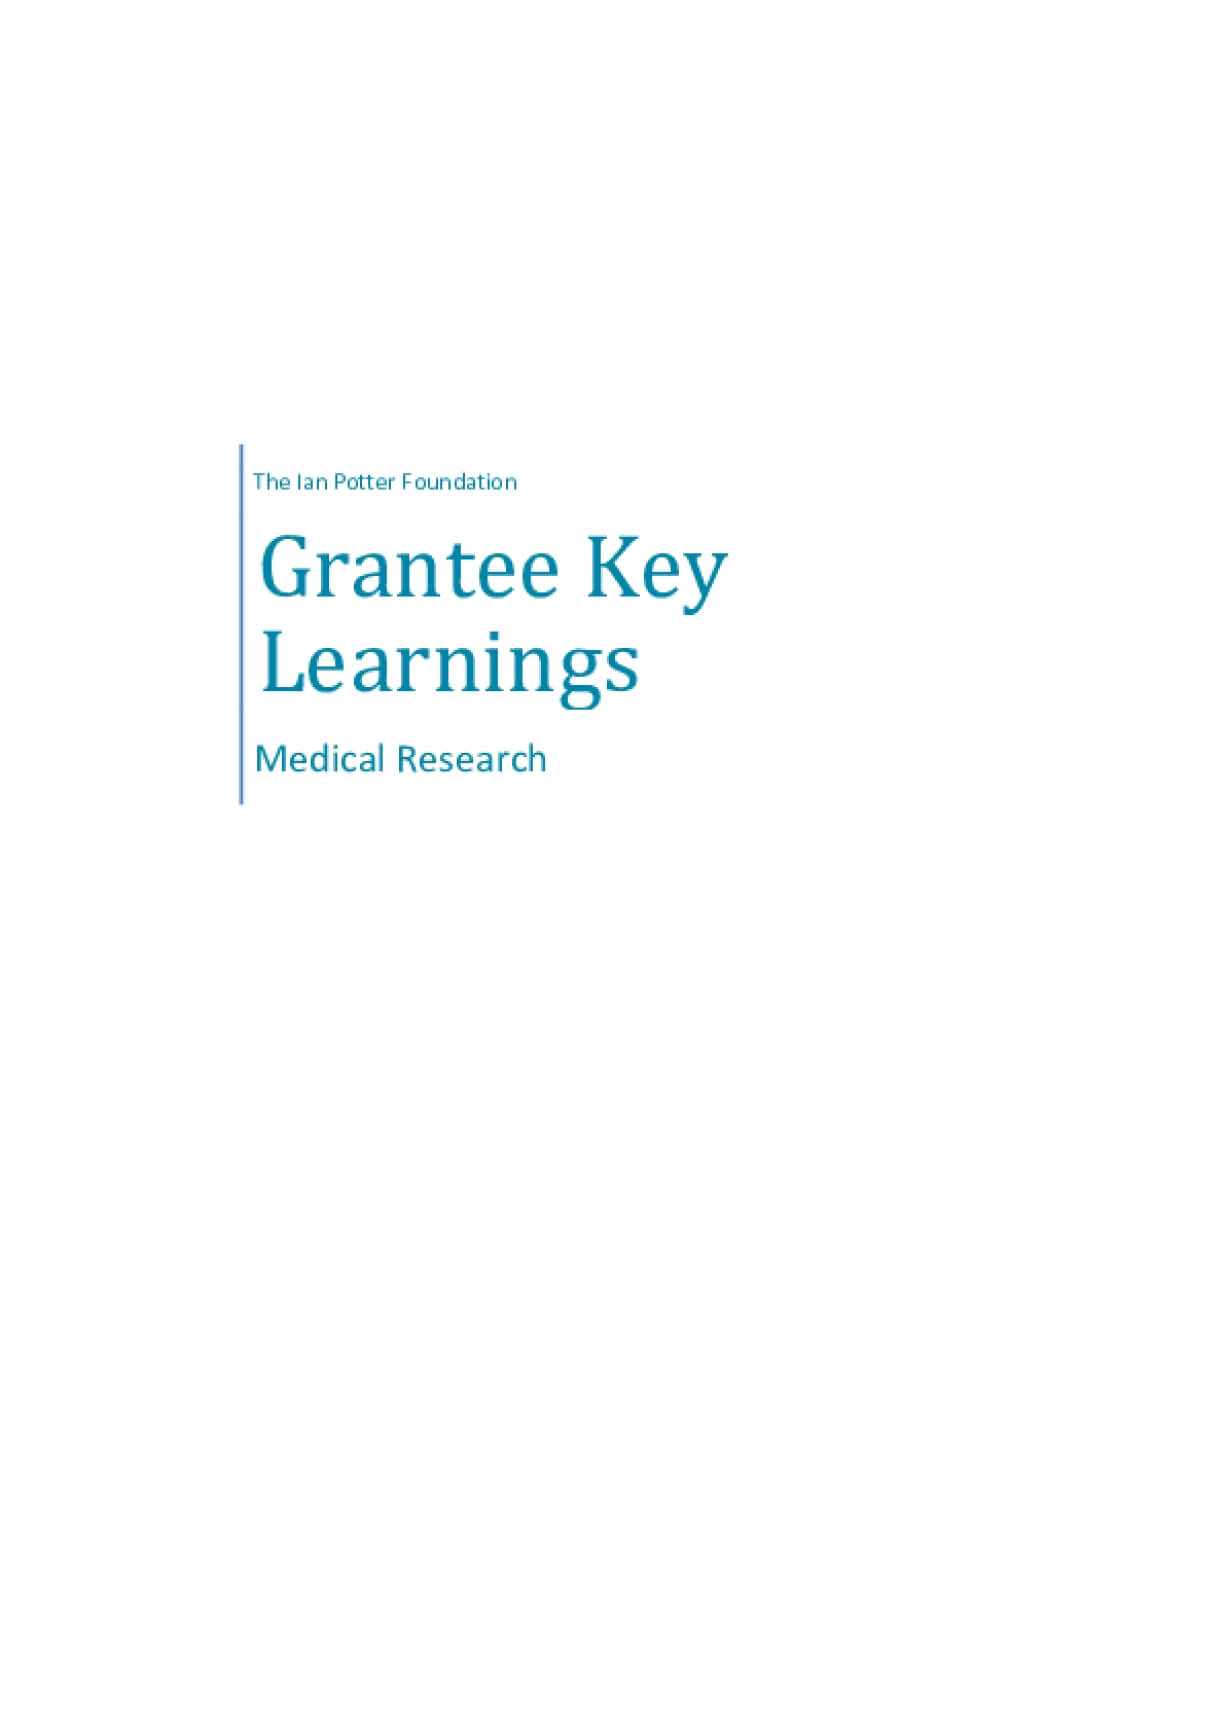 The Ian Potter Foundation Grantee Learnings - Medical Research